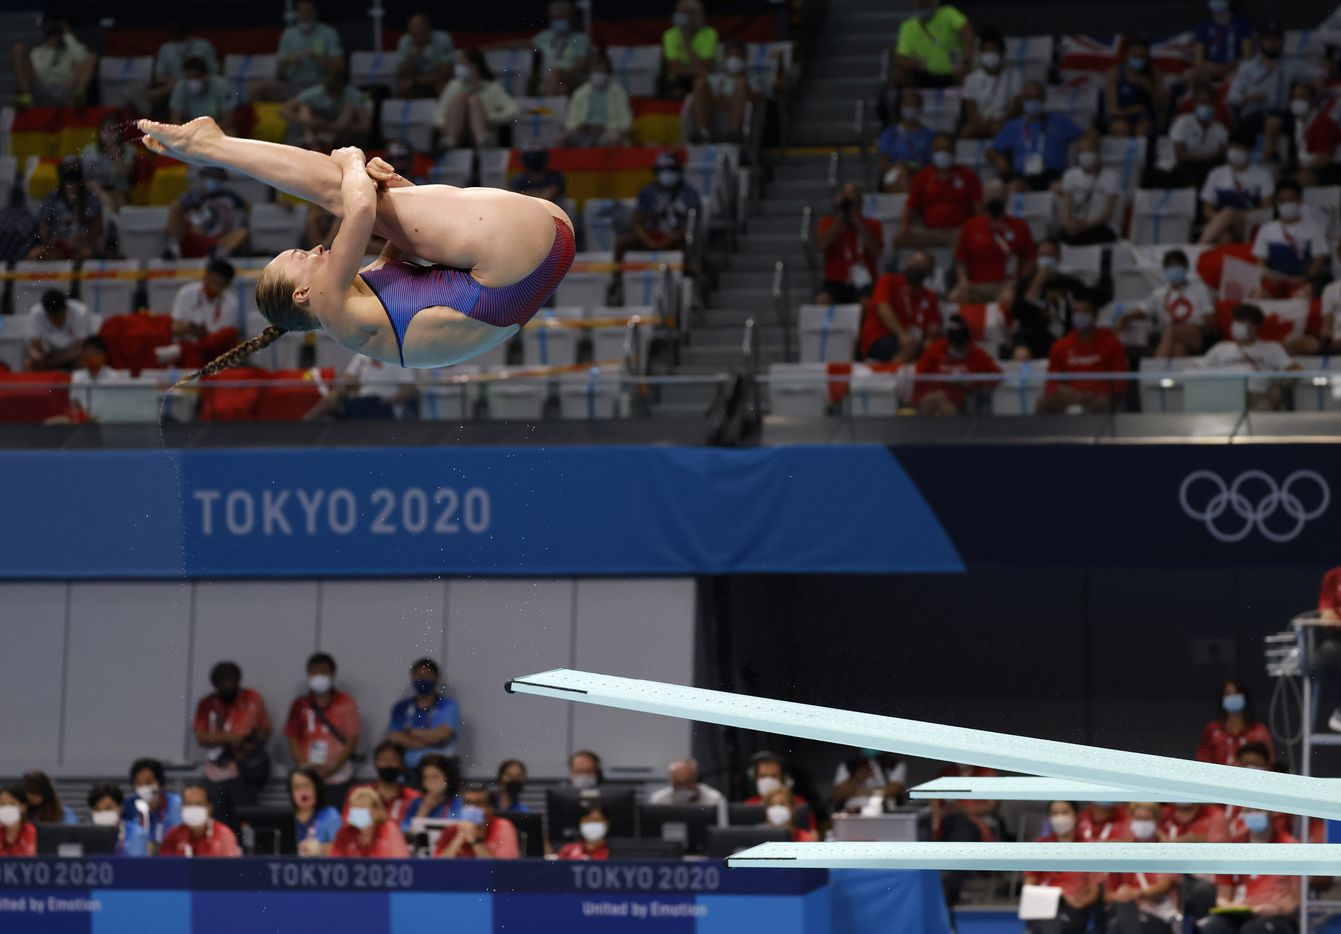 USA's Krysta Palmer competes in the women's 3 meter springboard preliminary competition during the postponed 2020 Tokyo Olympics at Tokyo Aquatics Centre, on Friday, July 30, 2021, in Tokyo, Japan. Palmer scored a total of 279.10 points to qualify for the next round. (Vernon Bryant/The Dallas Morning News)